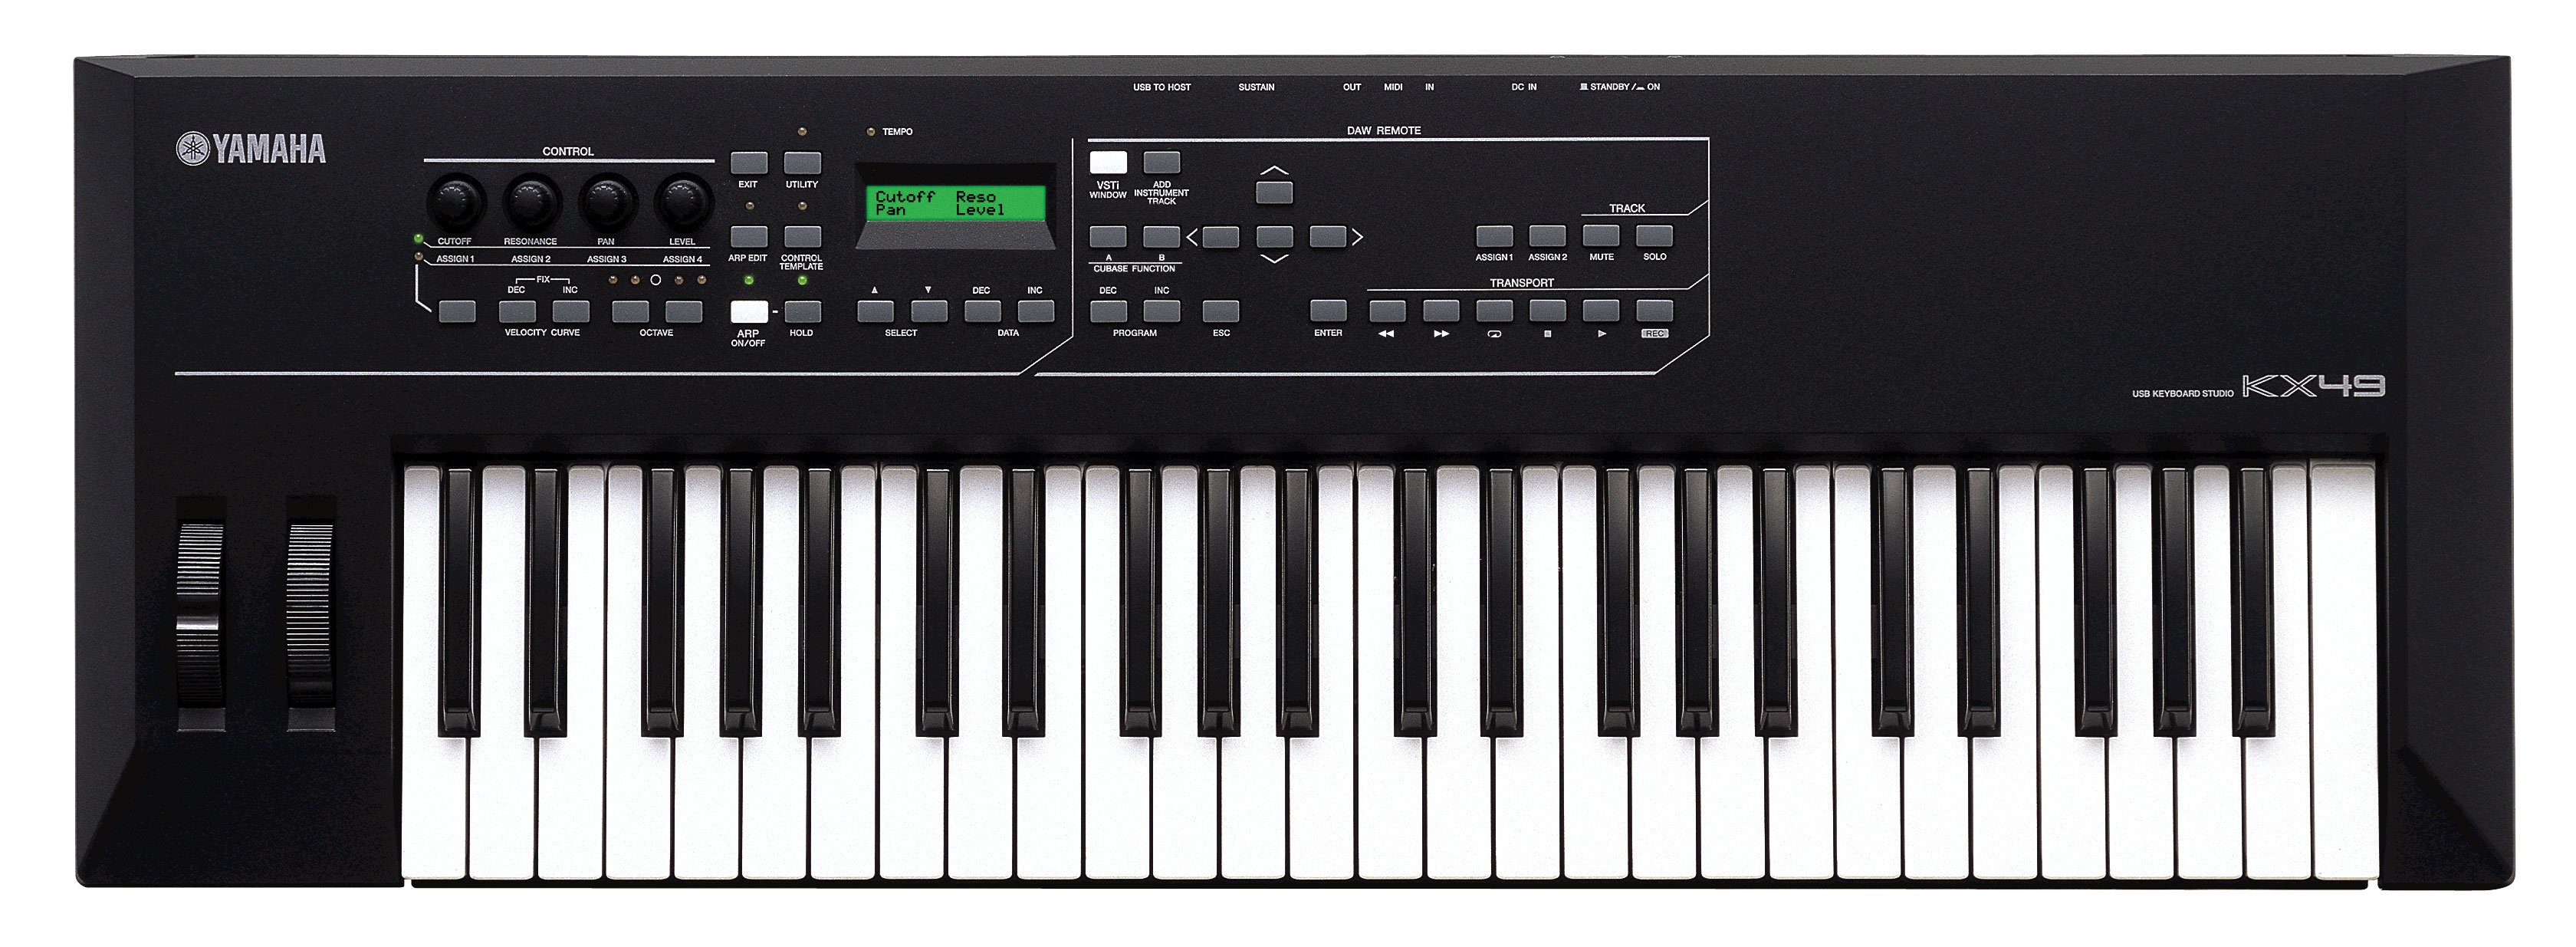 Yamaha Kx Aftertouch